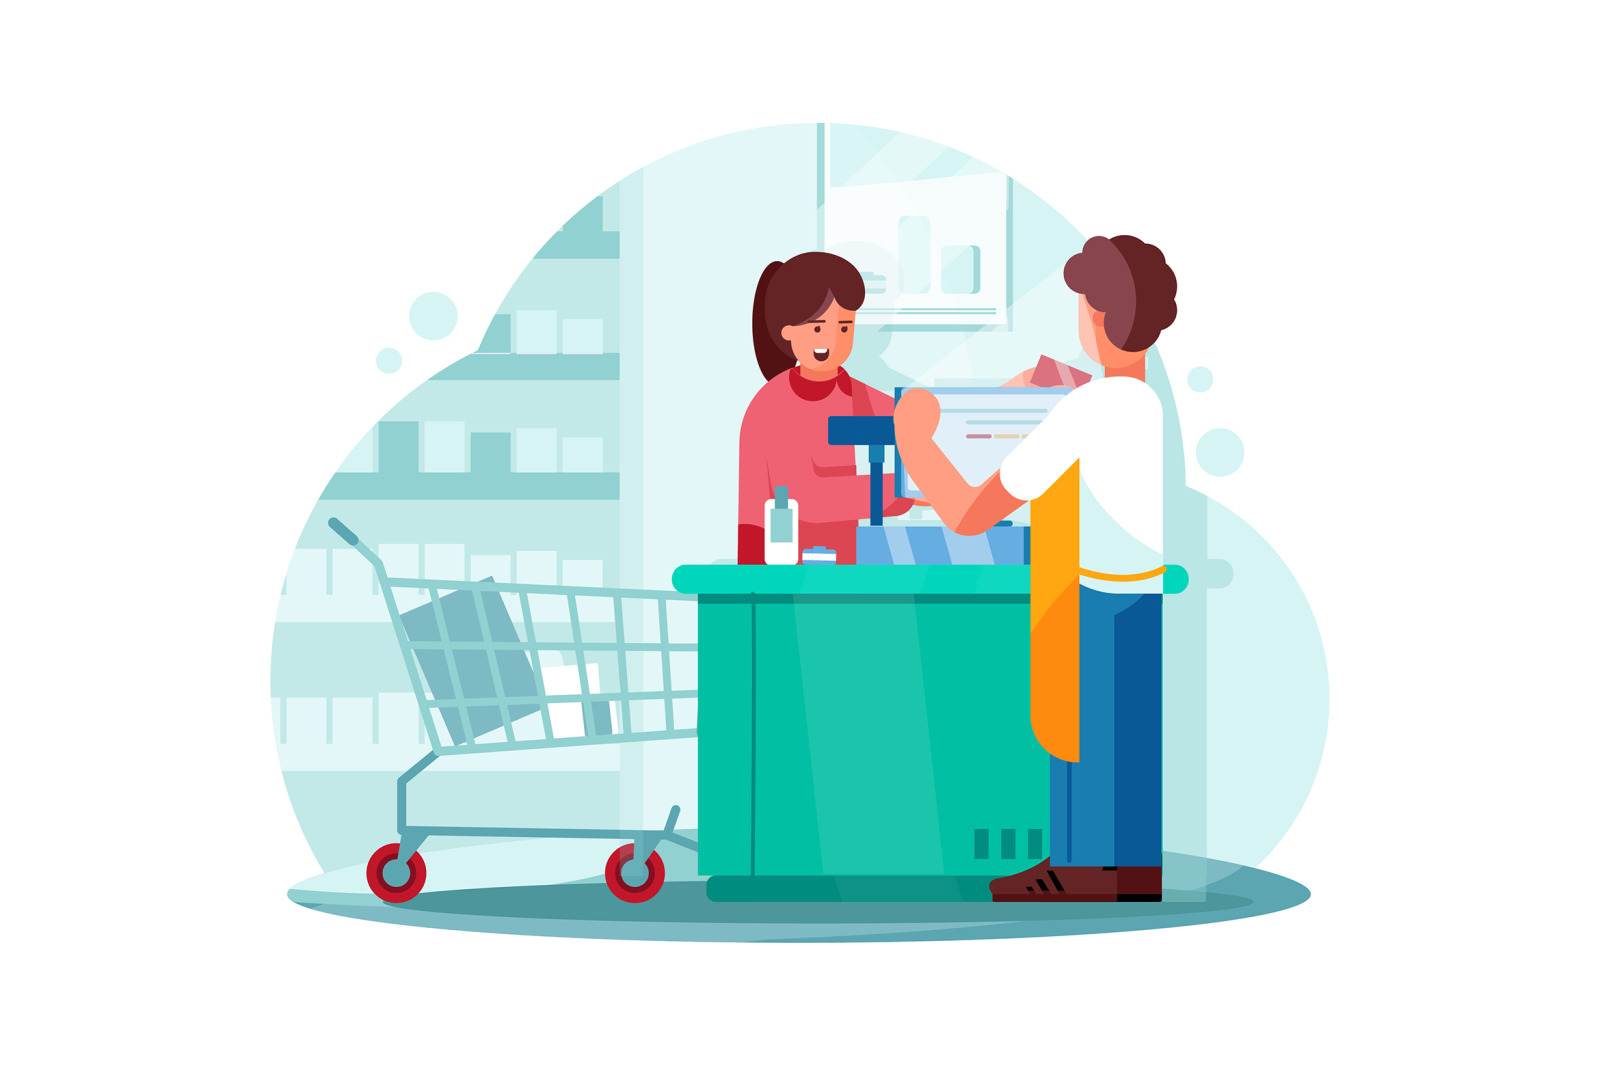 M108_Payment System Illustrations